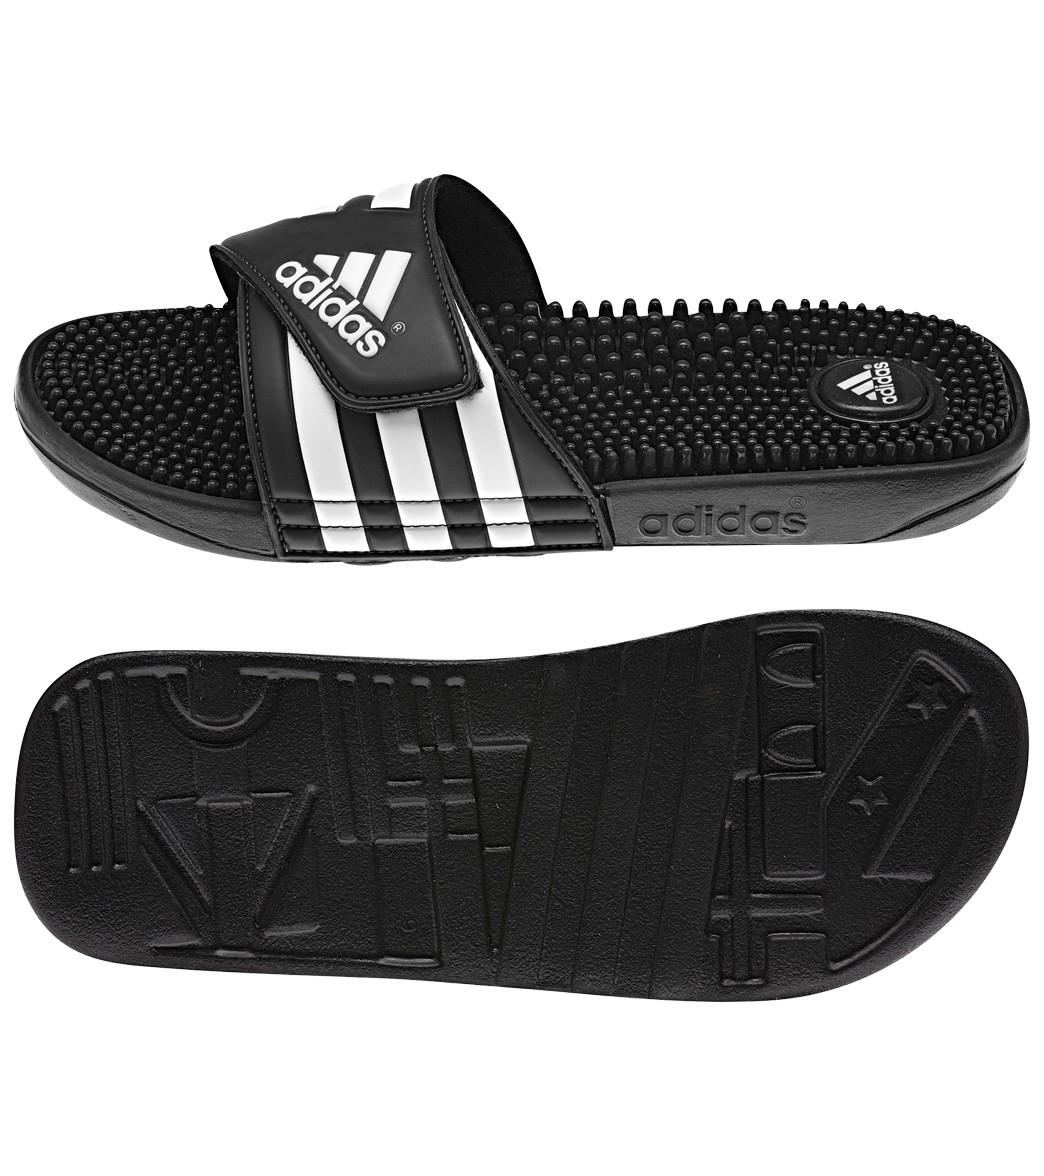 Adidas Adissage Slide Sandals At SwimOutlet.com